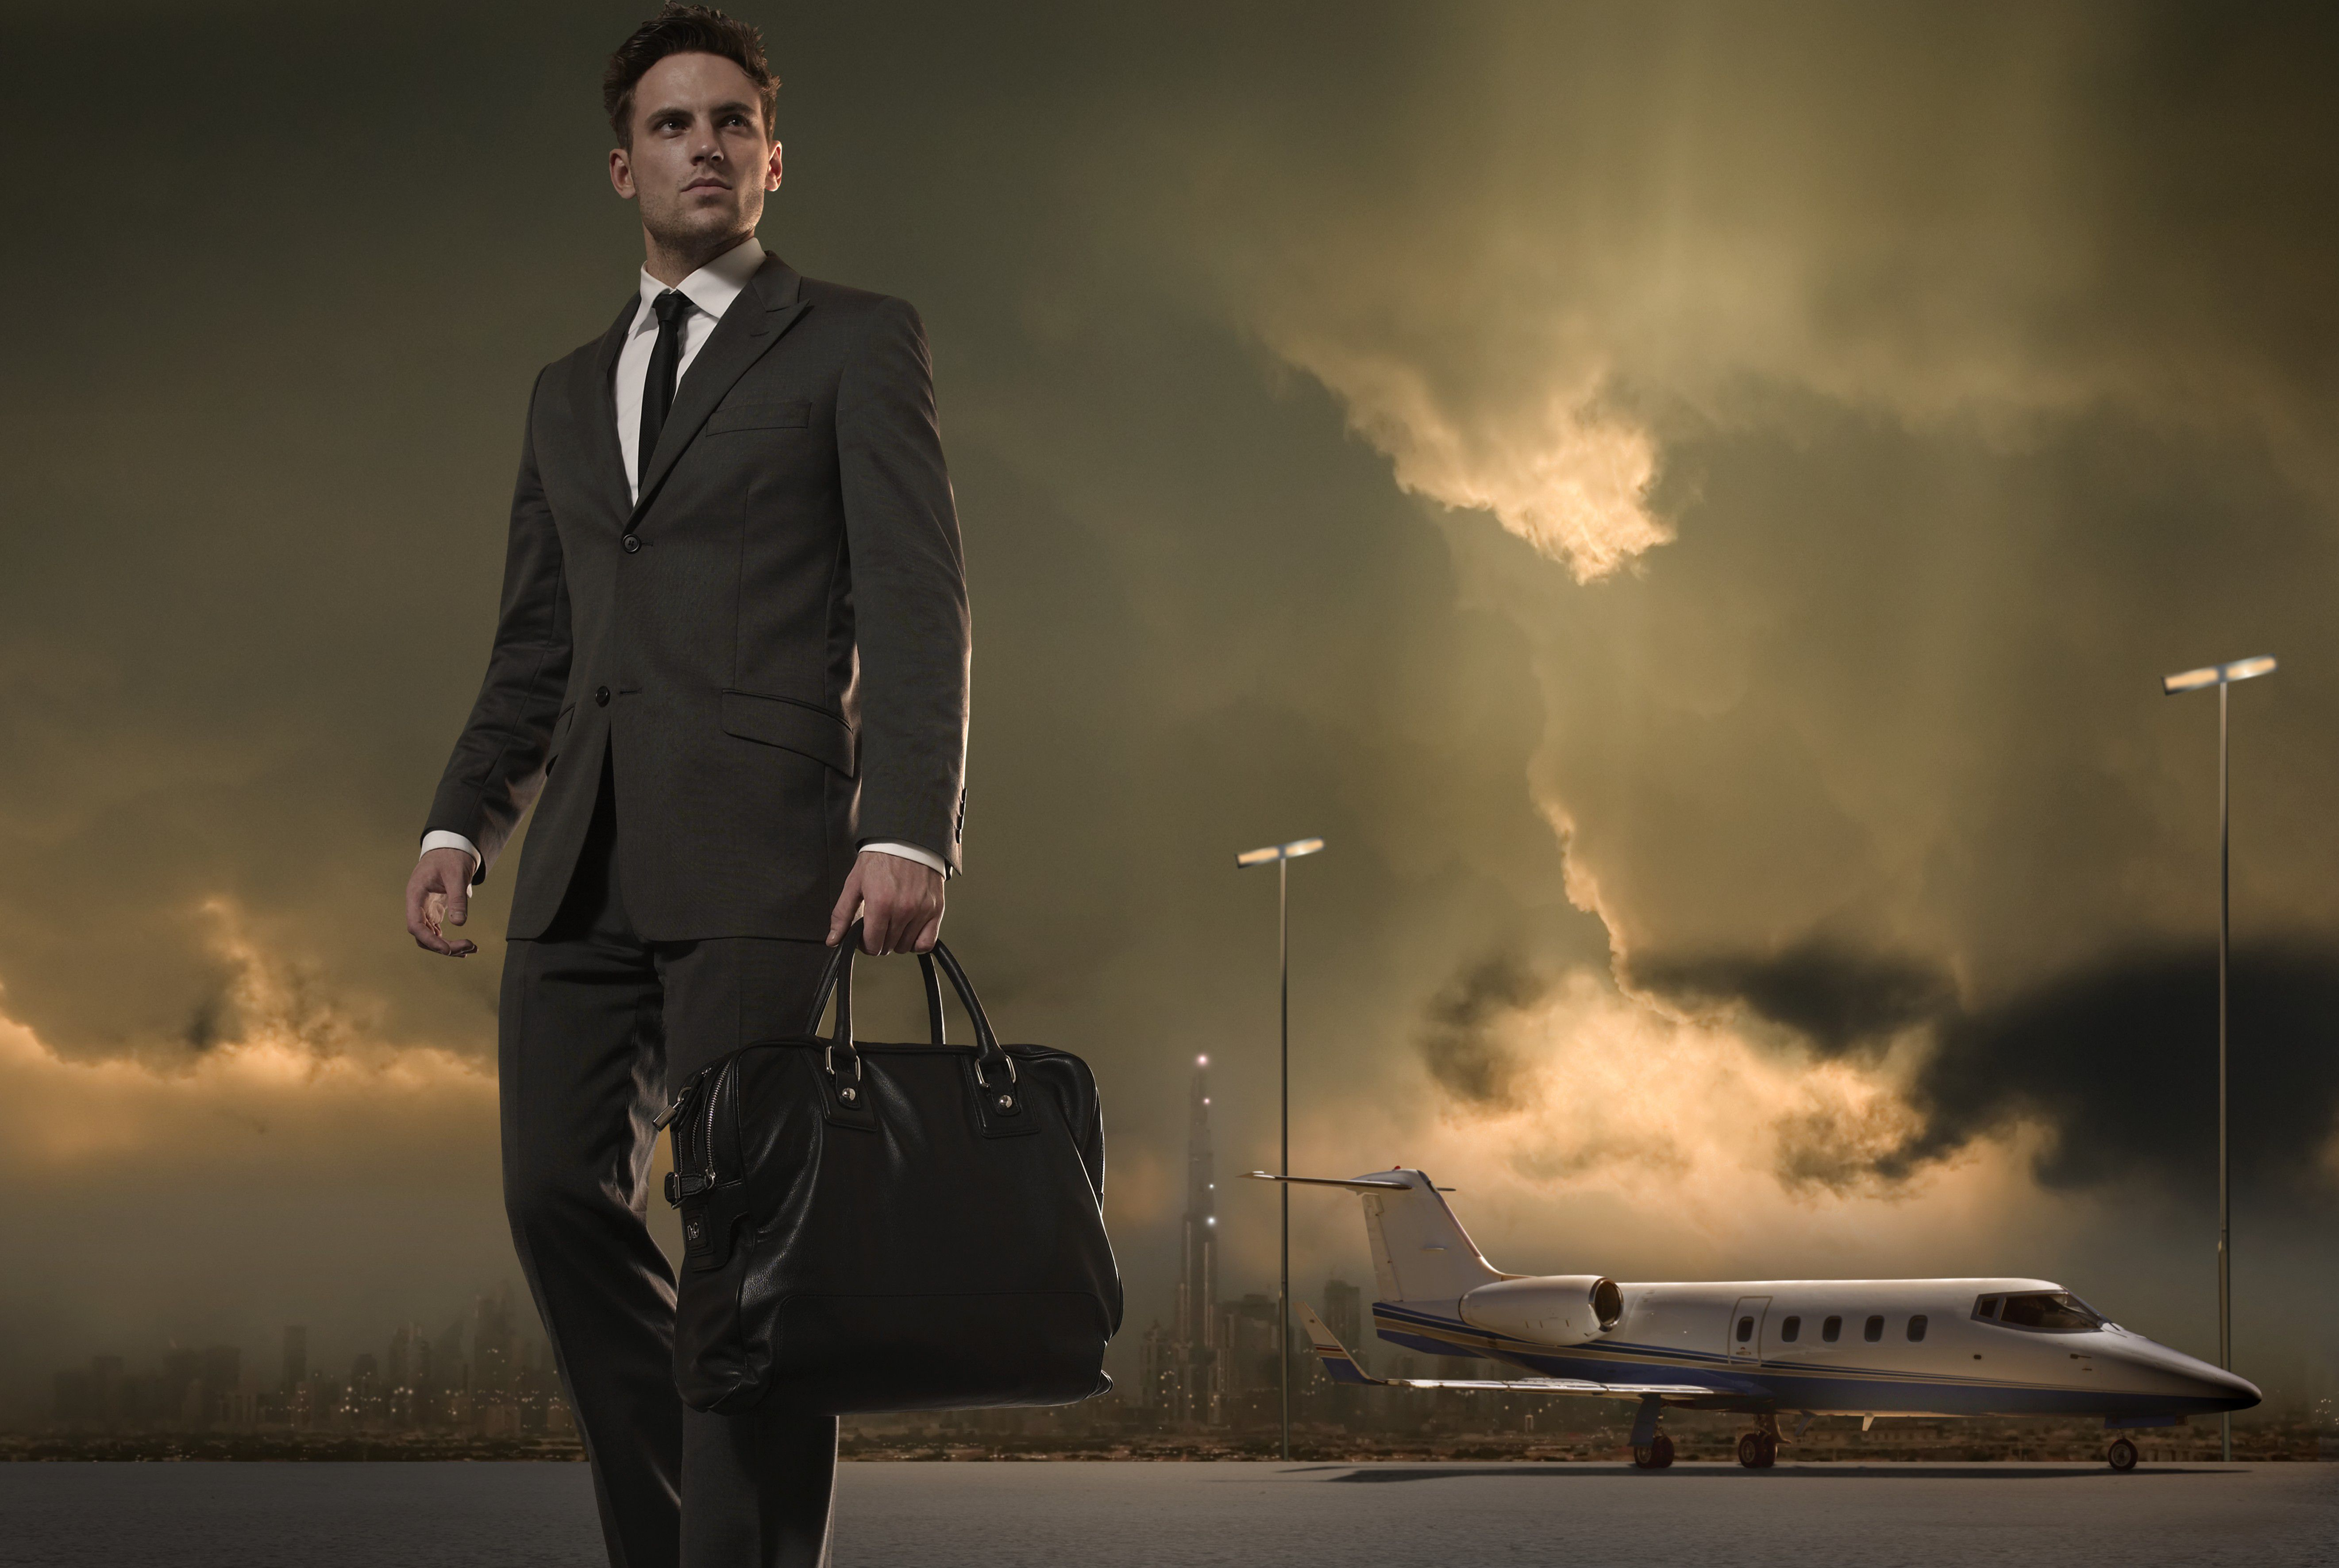 Businessman Walking Across Tarmac